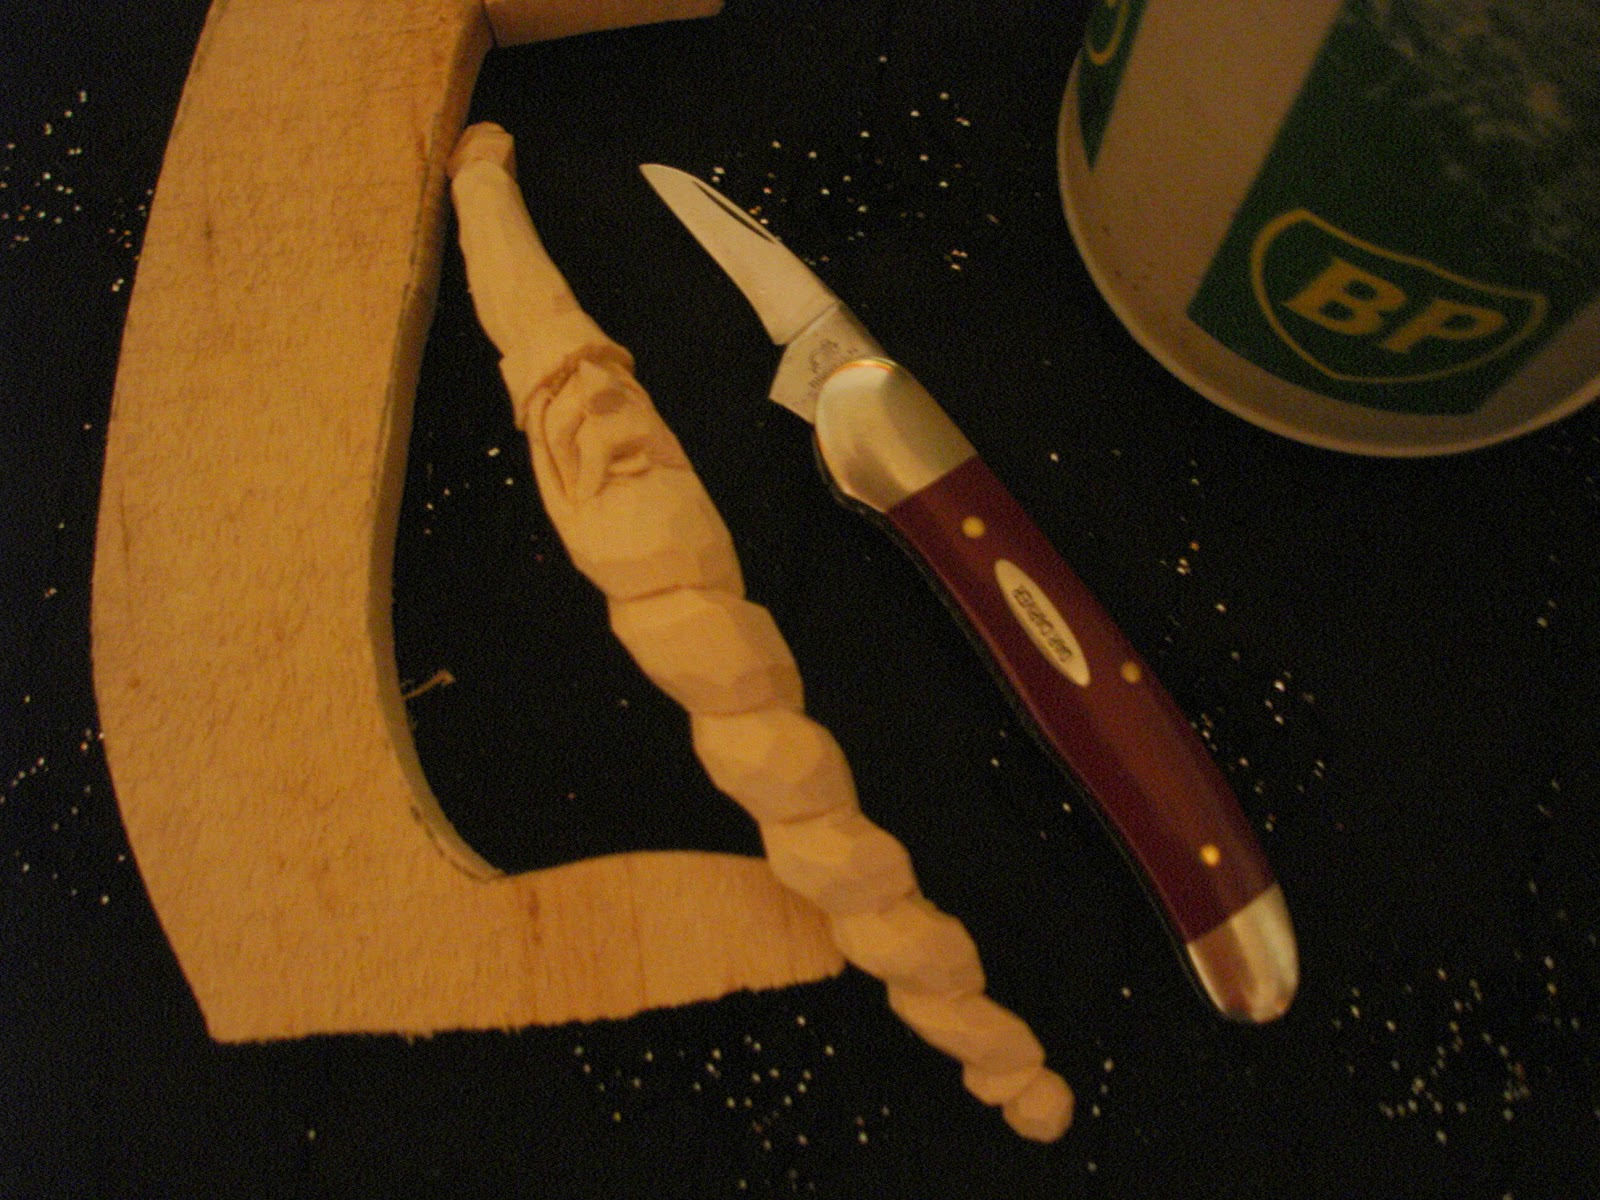 Whittling Ideas For Beginners x3cbx3ebeginnerx3c/bx3e wood x3cb ...